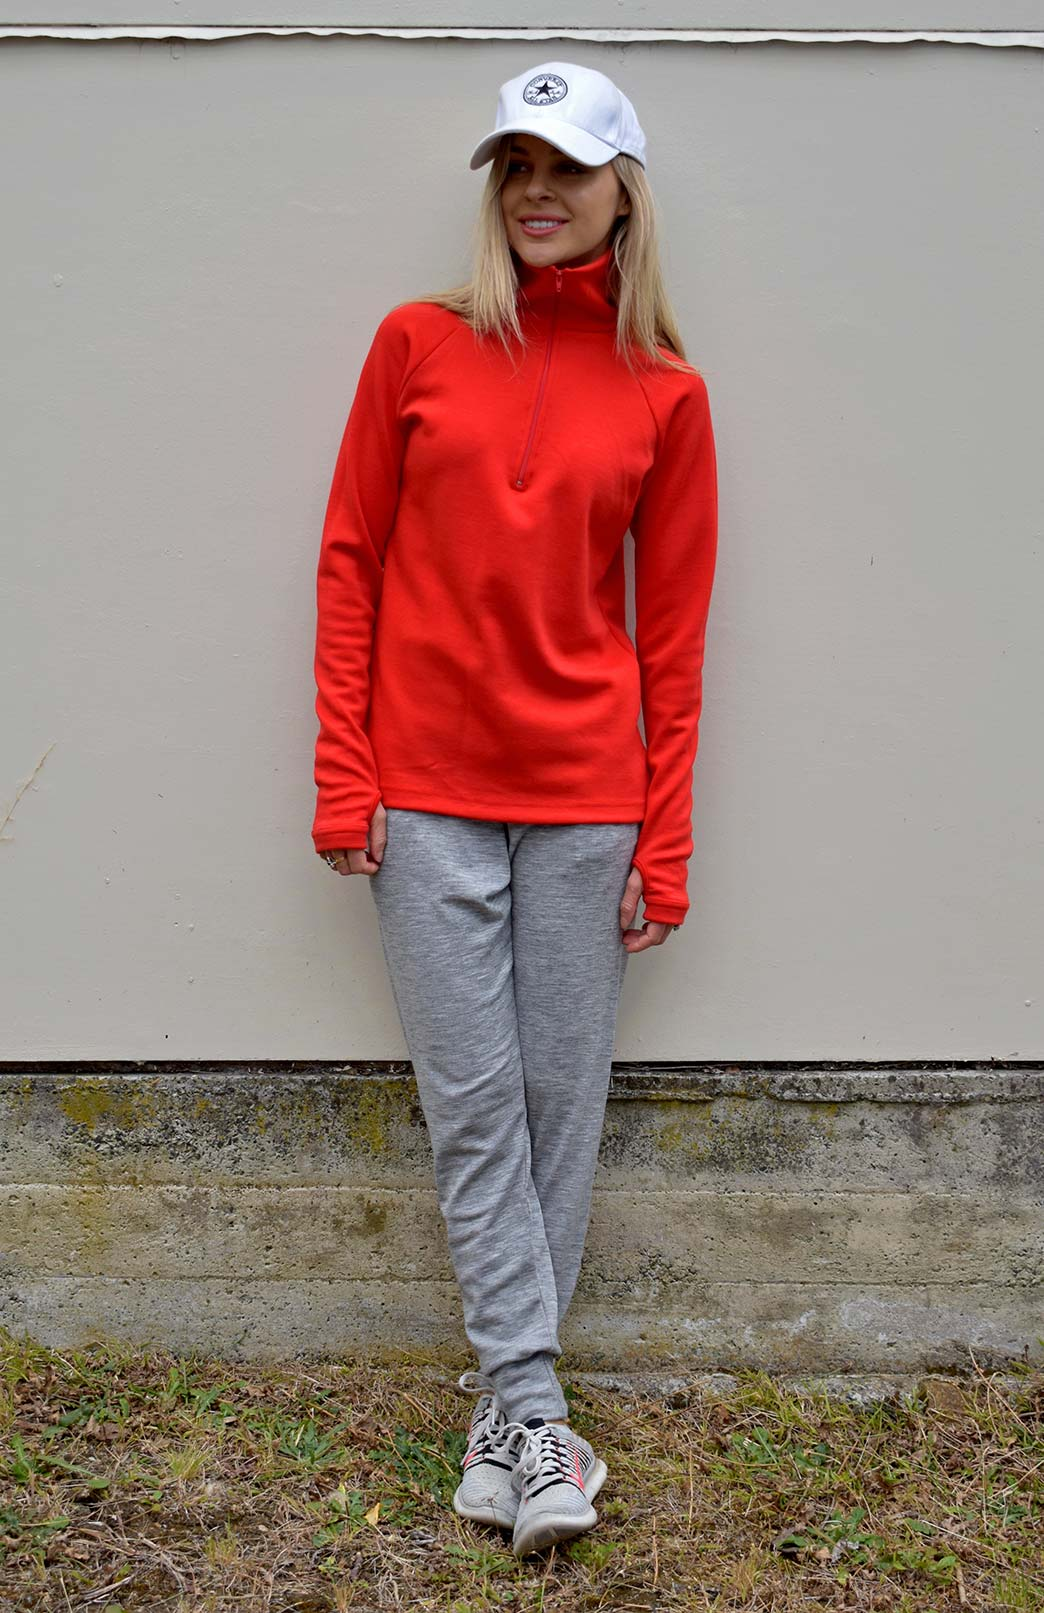 Zip Neck Top - Heavyweight (360g) - Women's Merino Wool Poppy Red Heavyweight Zip Neck Pullover Style Thermal Top - Smitten Merino Tasmania Australia